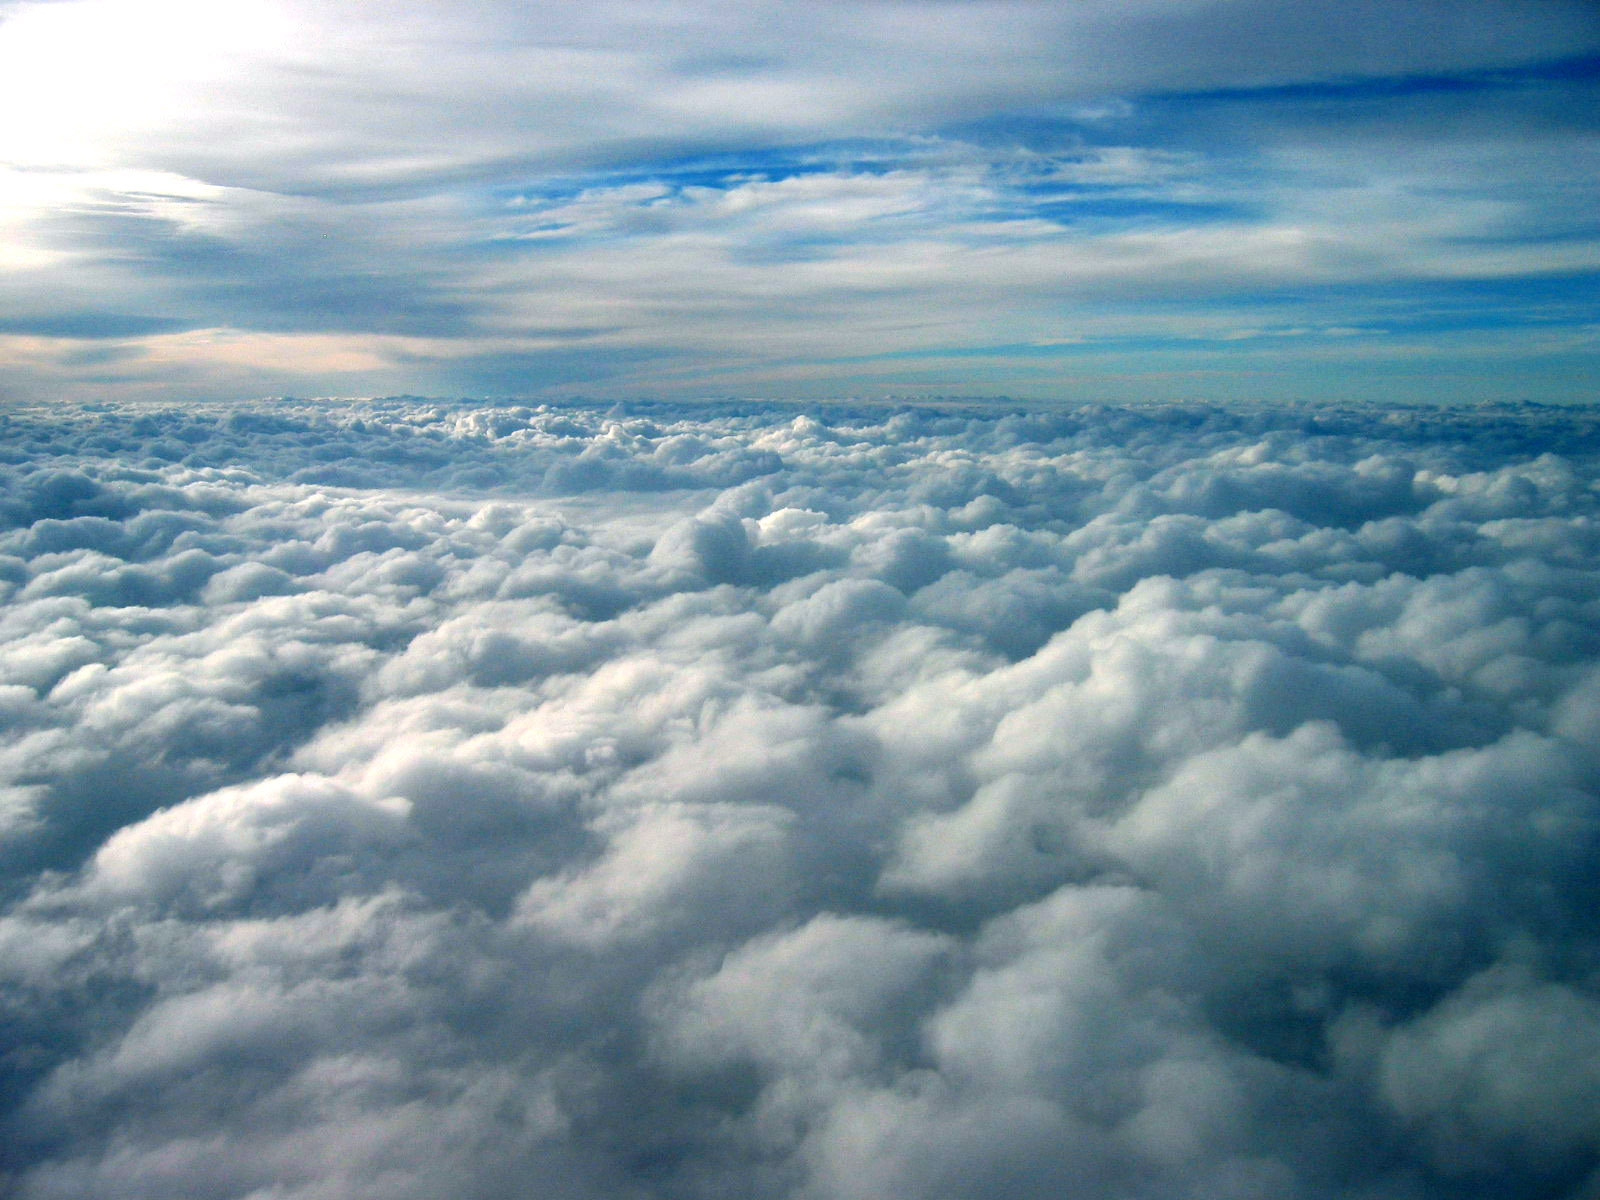 Above the Clouds by jyncus on DeviantArt